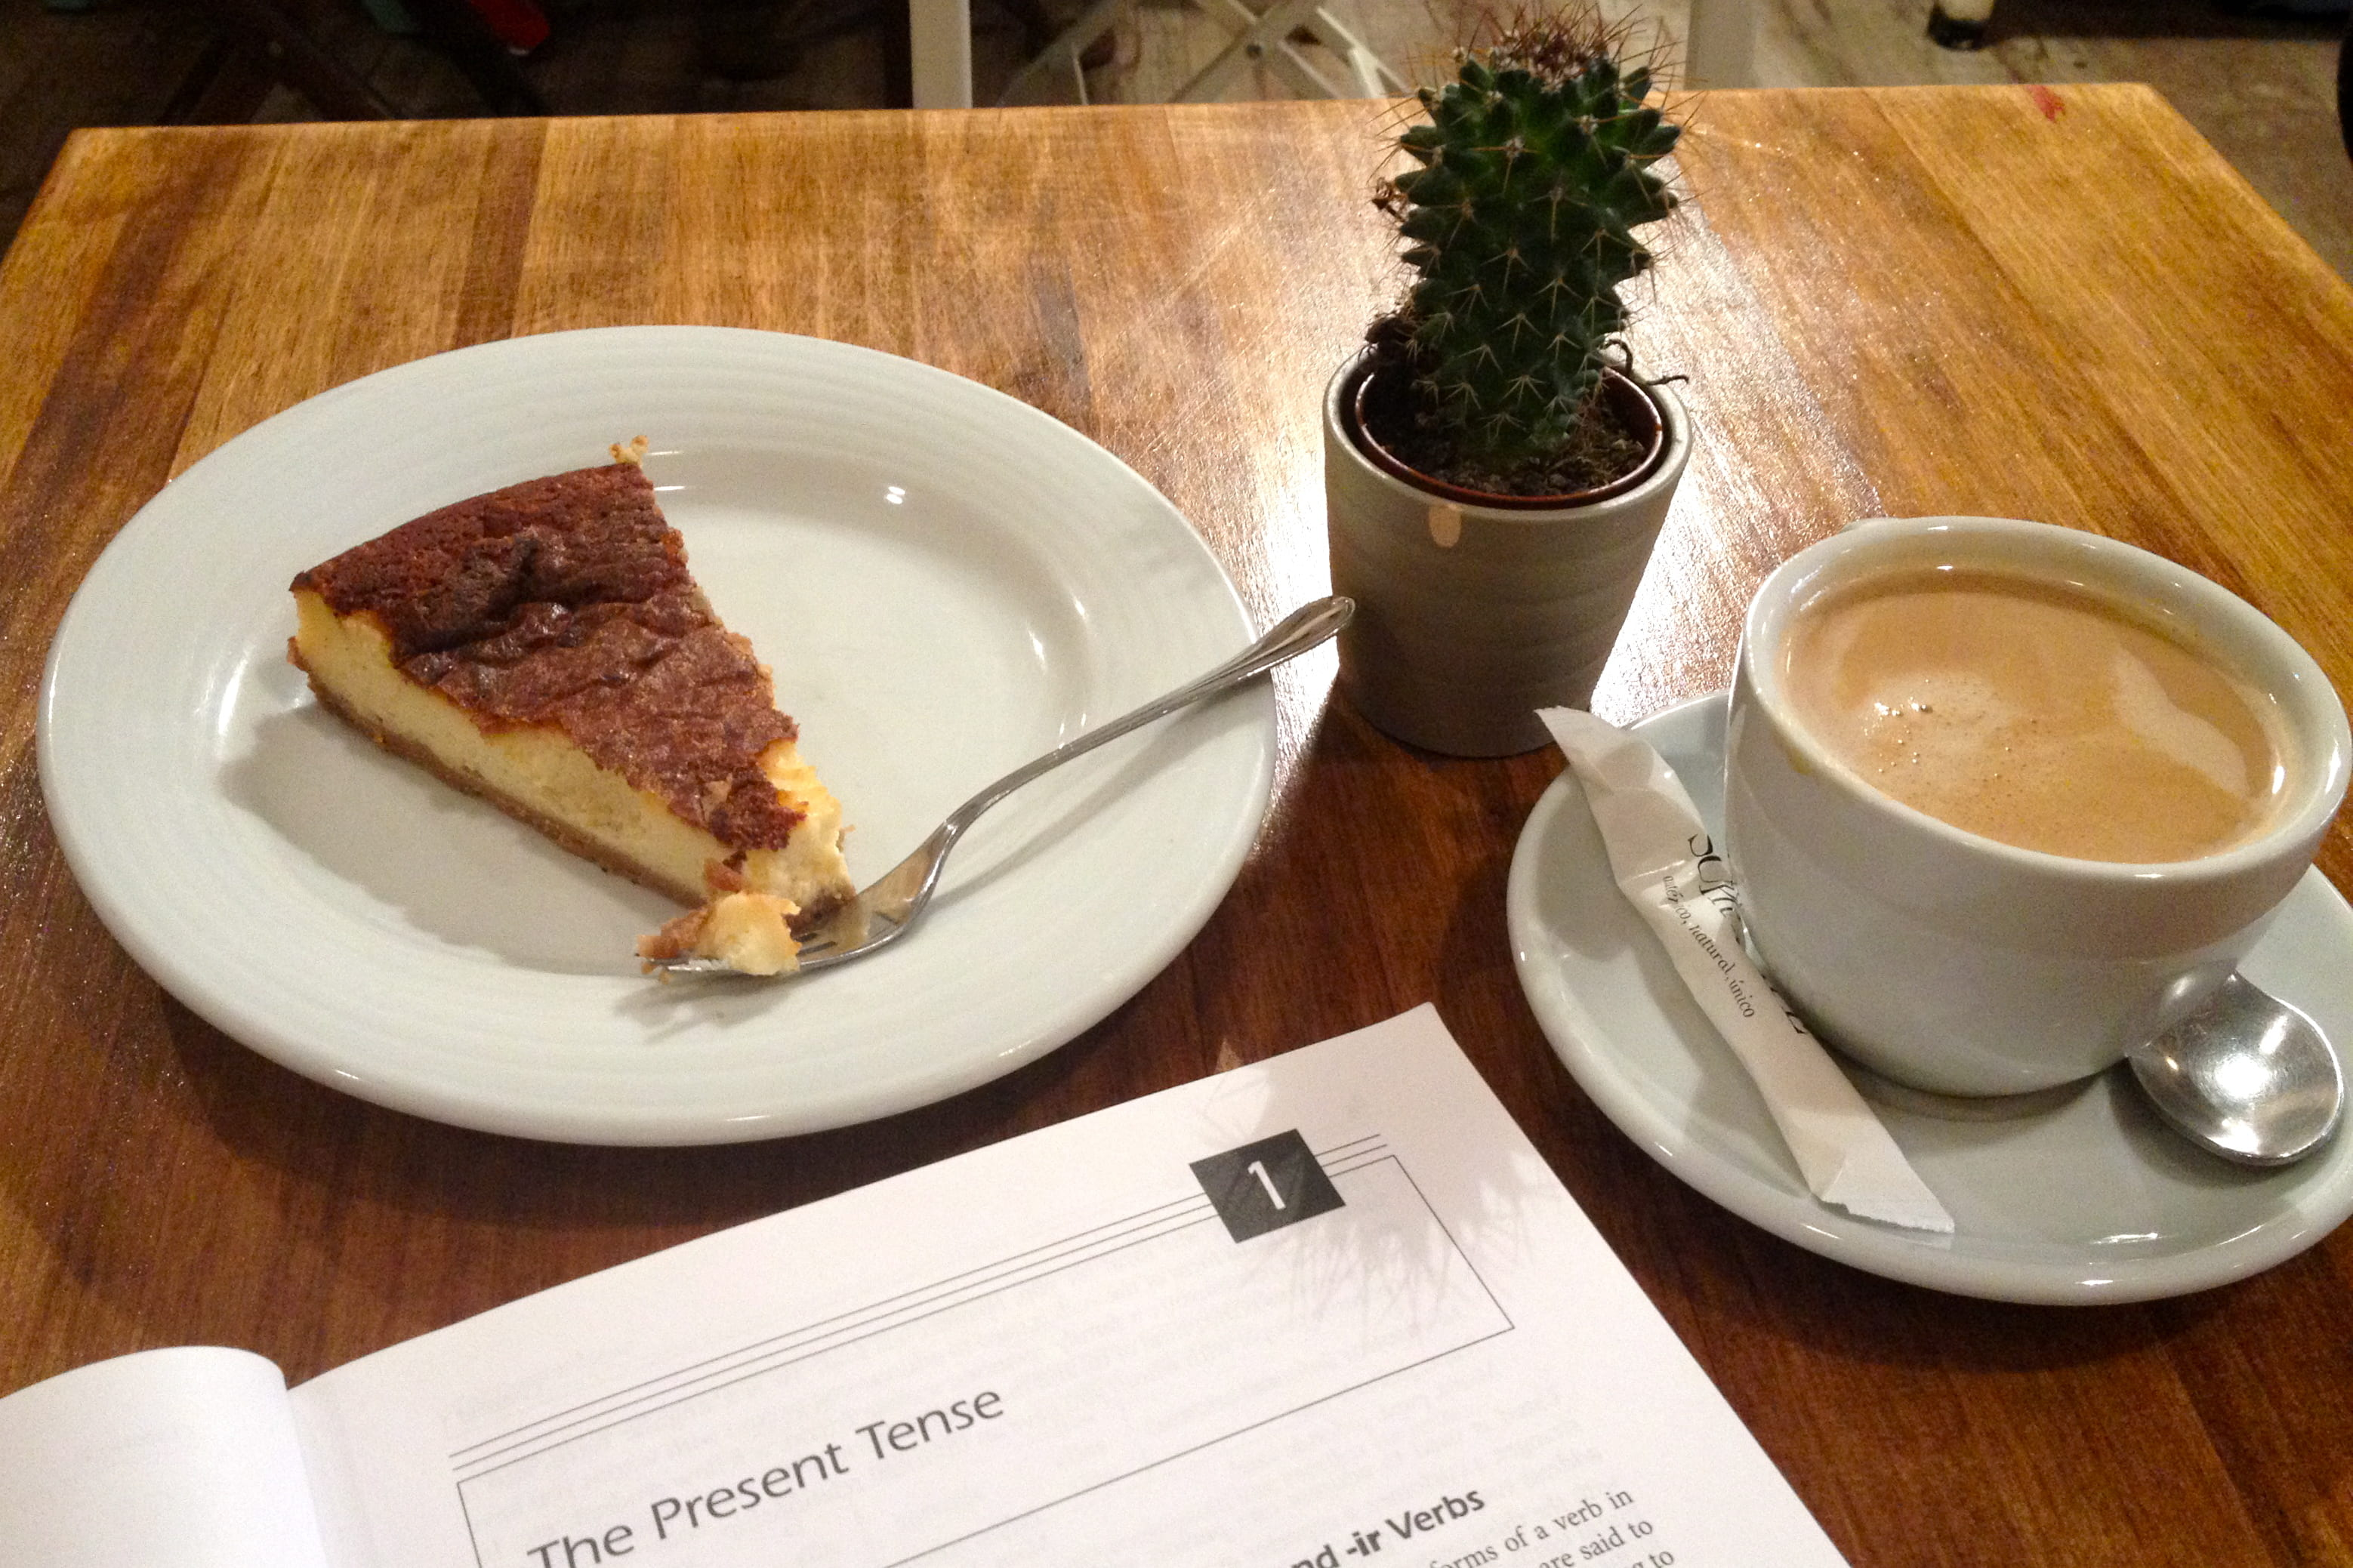 Spanish grammar book with dessert and coffee